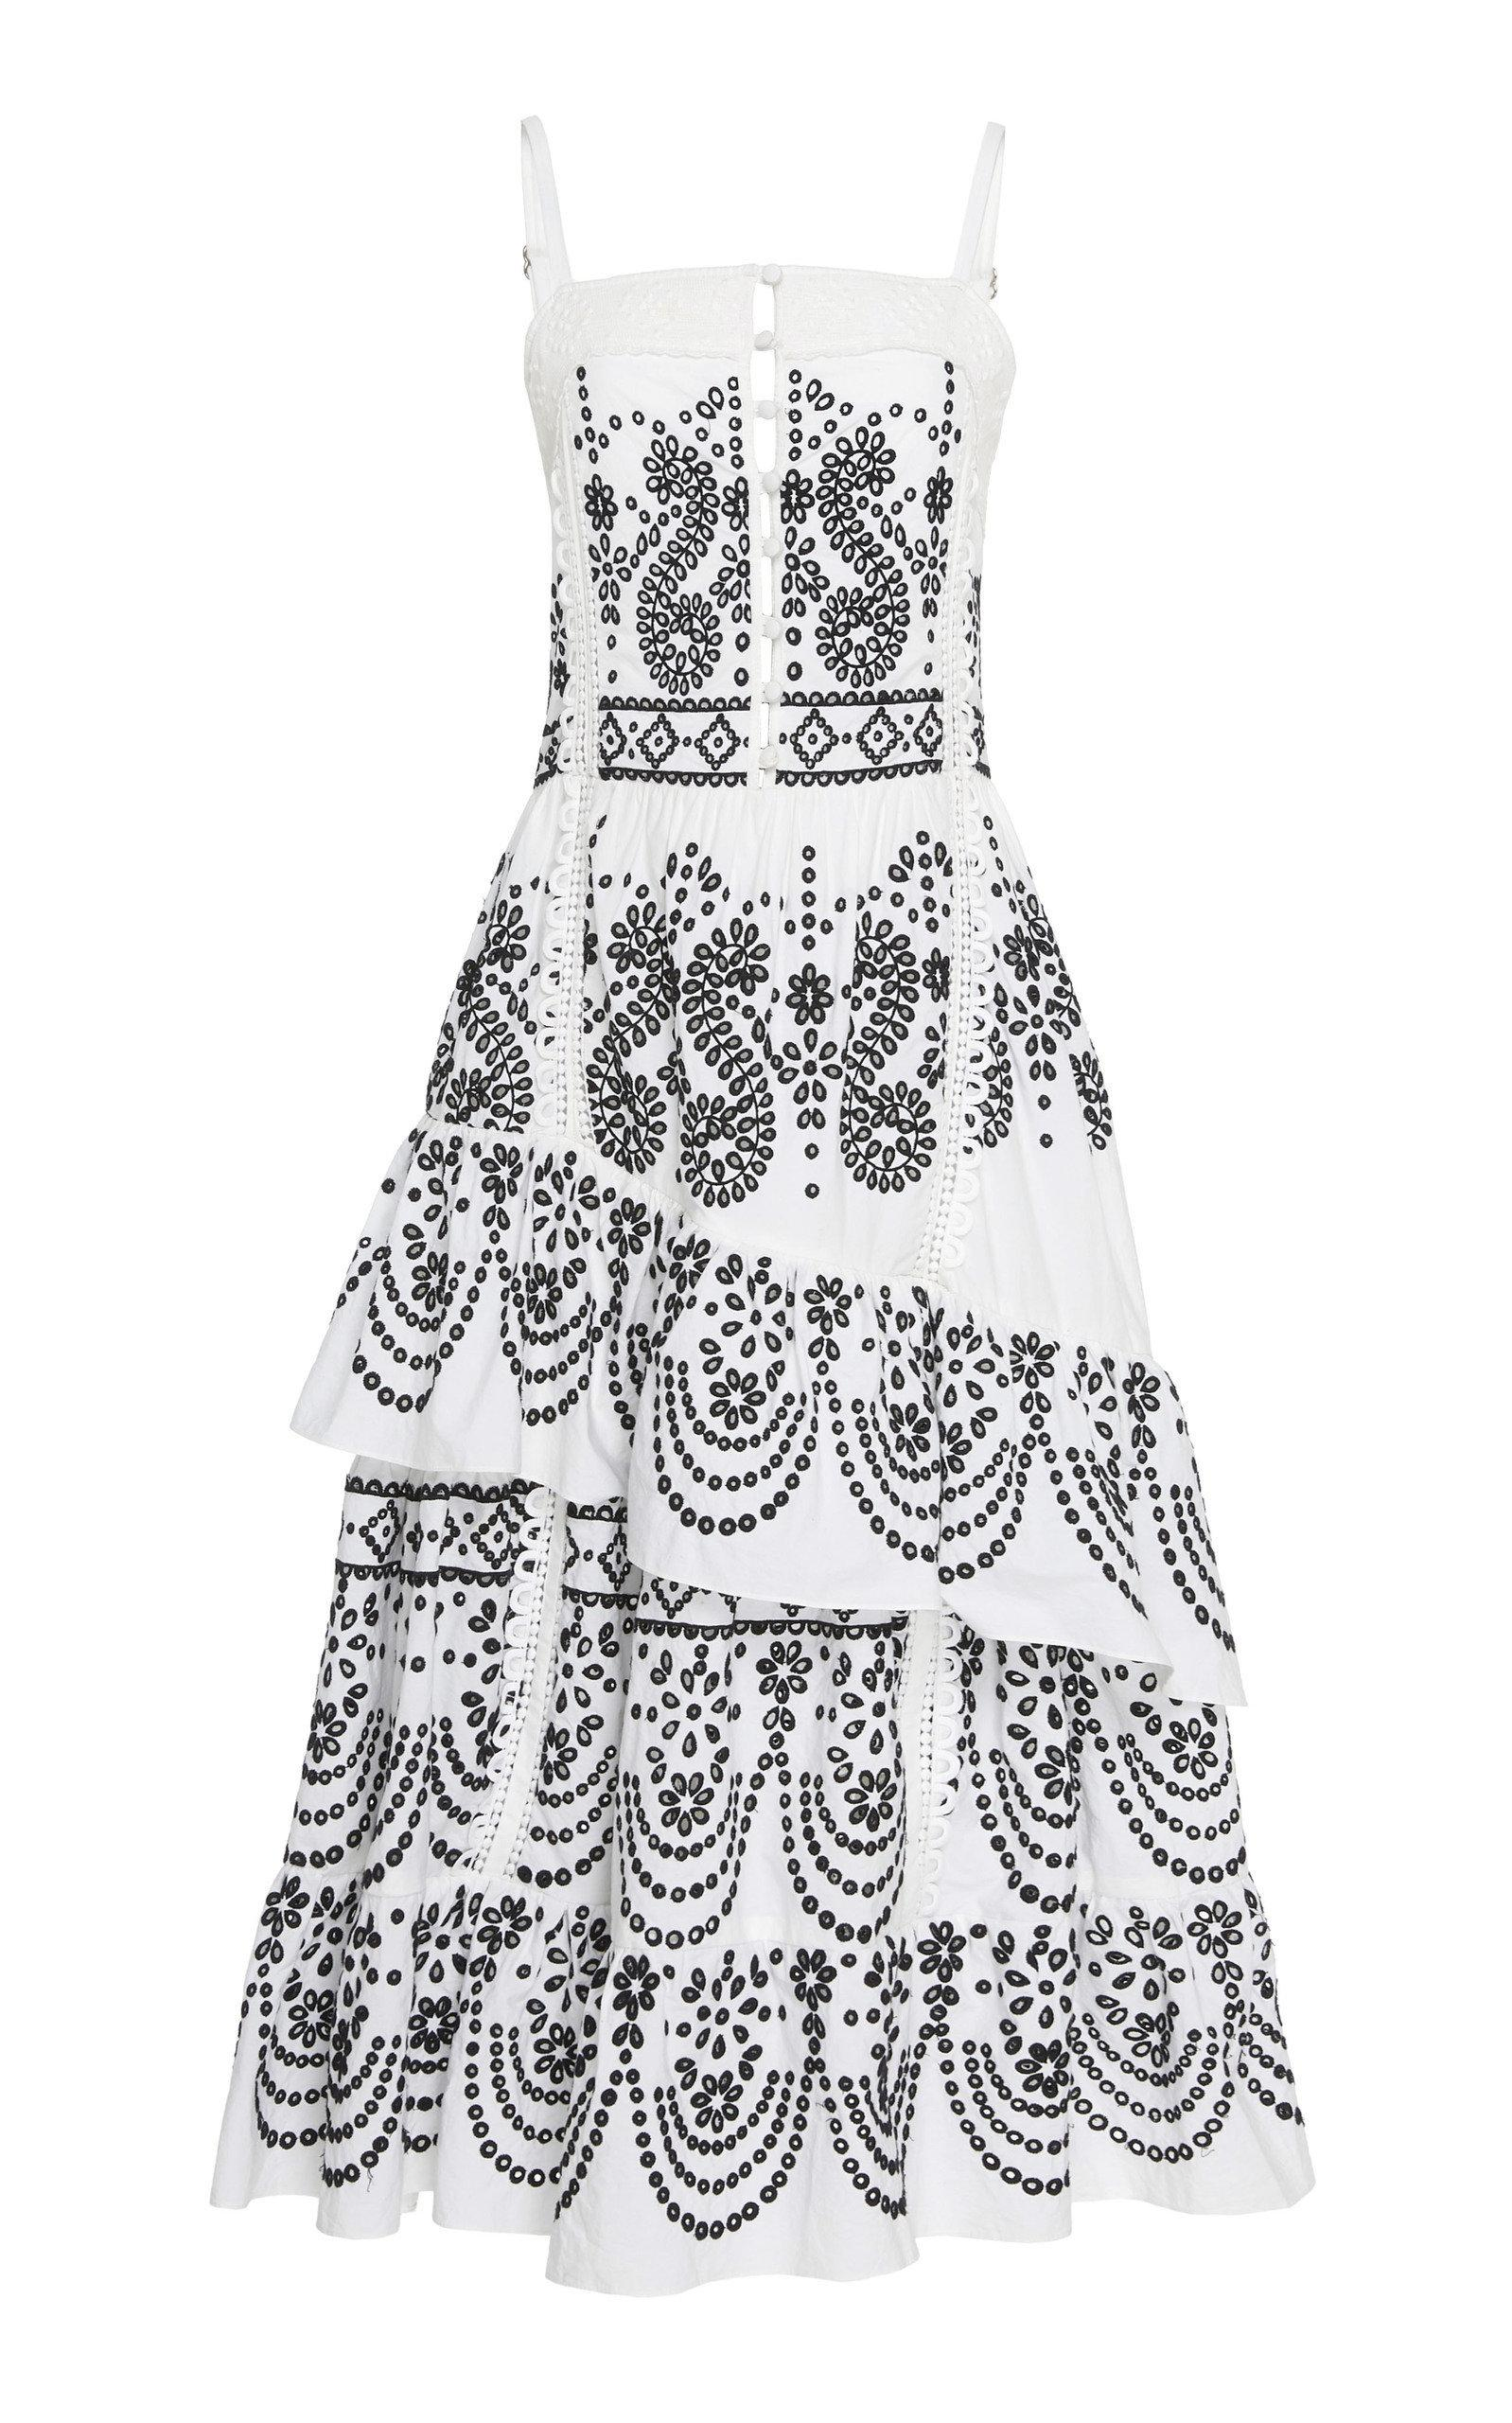 Marissa Webb Adriana Embroidered Dress In Black/white